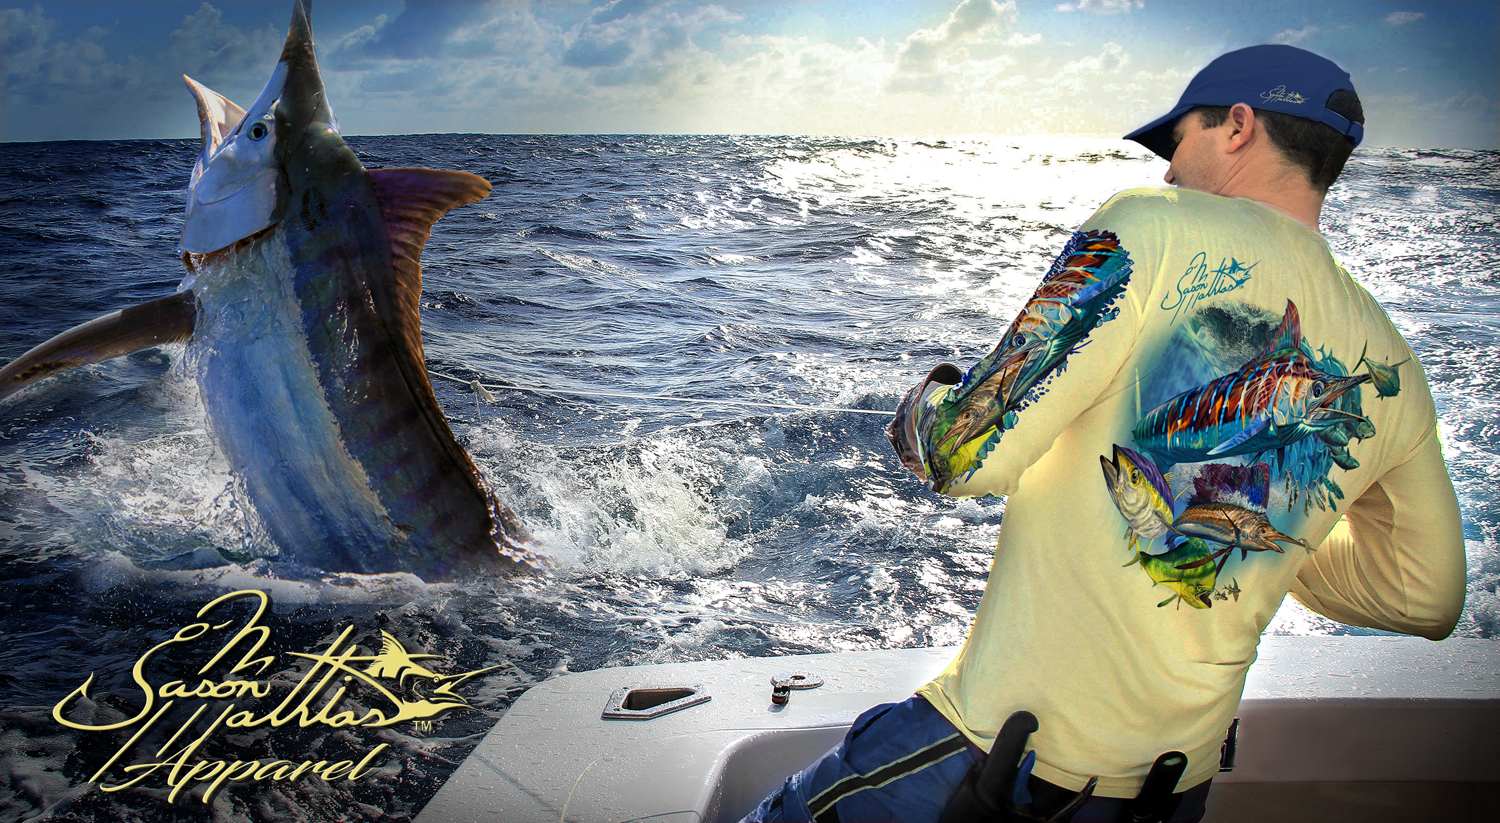 jason-mathias-sport-fishing-shirts-apparel-gear-fine-art-desings-high-performance-clothing.jpg